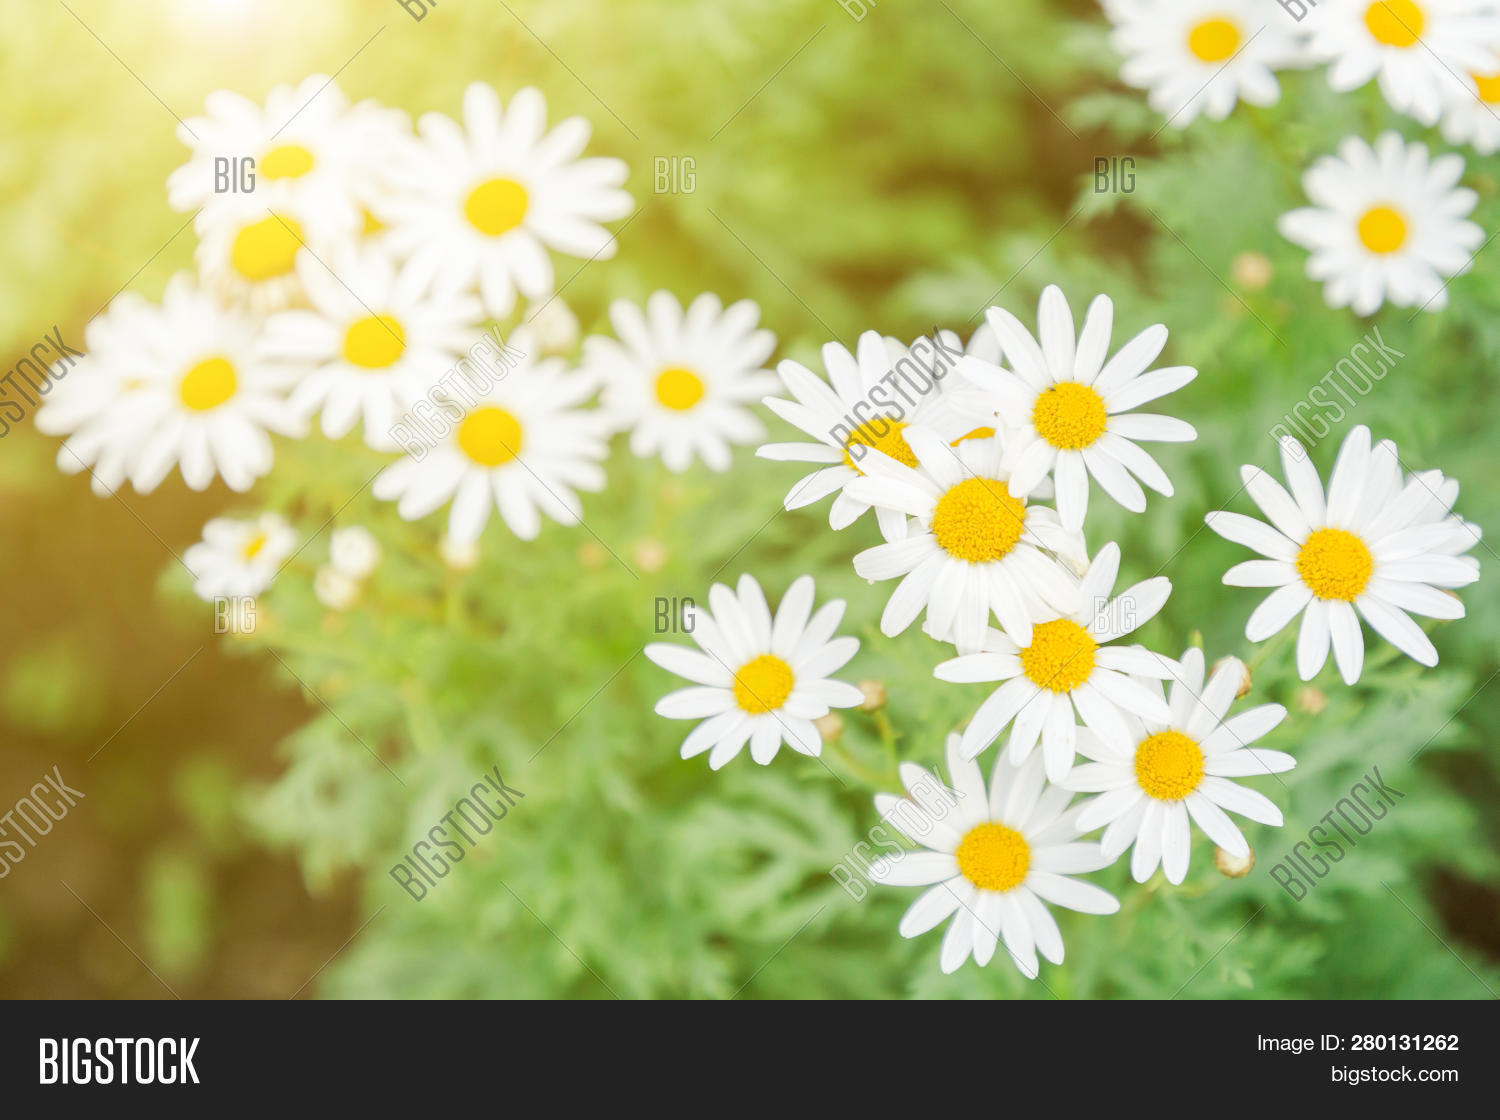 artistic,background,beautiful,beauty,blossom,border,botanical,bouquet,card,colorful-flower,composition,concept,day,decoration,equipment,floral,flower,flower-background,flower-bouquet,flower-garden,flower-pattern,forest,frame,fresh,garden,green,greeting,hobby,horticulture,leaves,mothers,nature,outdoors,pattern,plants,romantic,season,space,spring,summer,sunny,template,terrace,tree,vintage,wallpaper,watercolor,watering,wedding,white